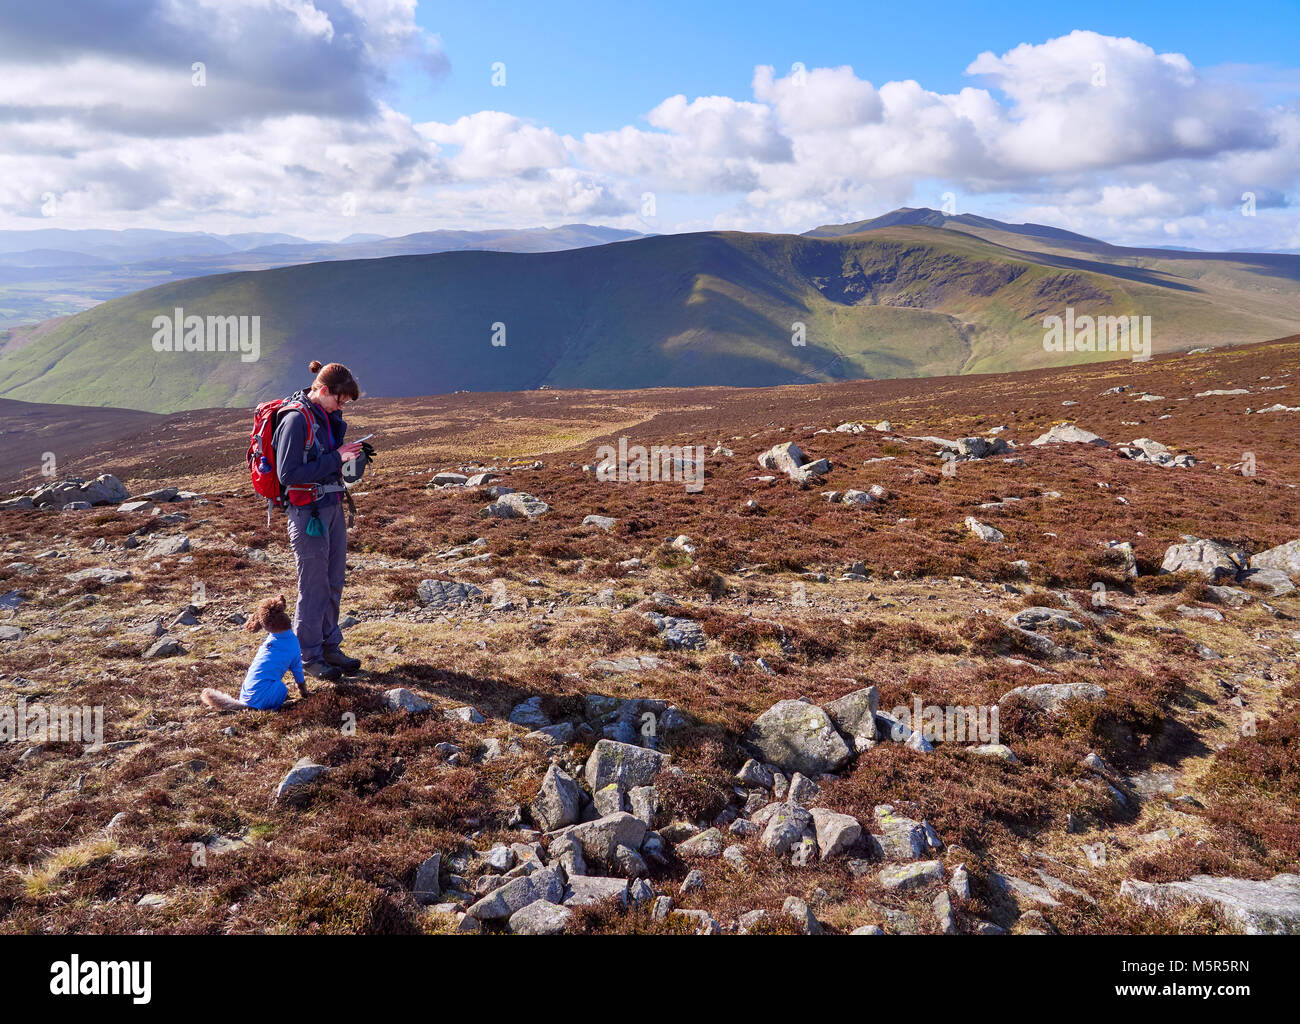 A hiker checking their position on a GPS map near the summit of Carrock Fell with views of Bowscale Fell and Blencathra - Stock Image